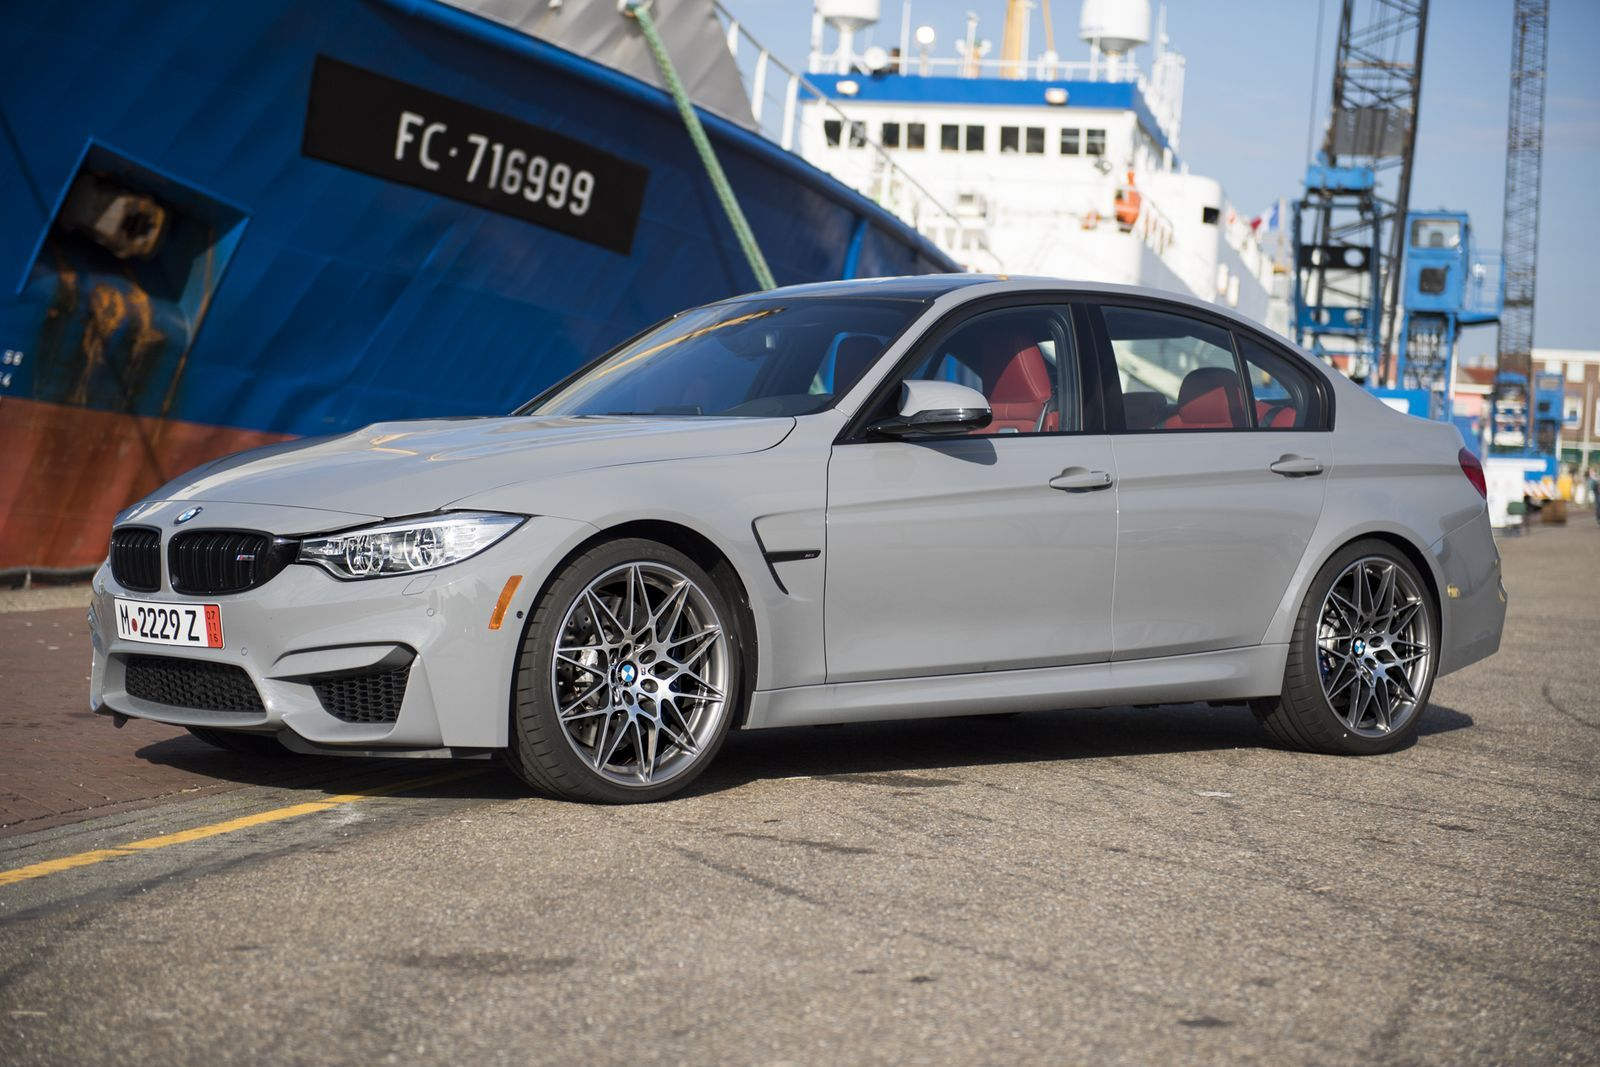 Nardo Grey Bmw M3 Competition Package Is Audi S Worst Nightmare Carscoops Bmw Bmw M3 Nardo Grey